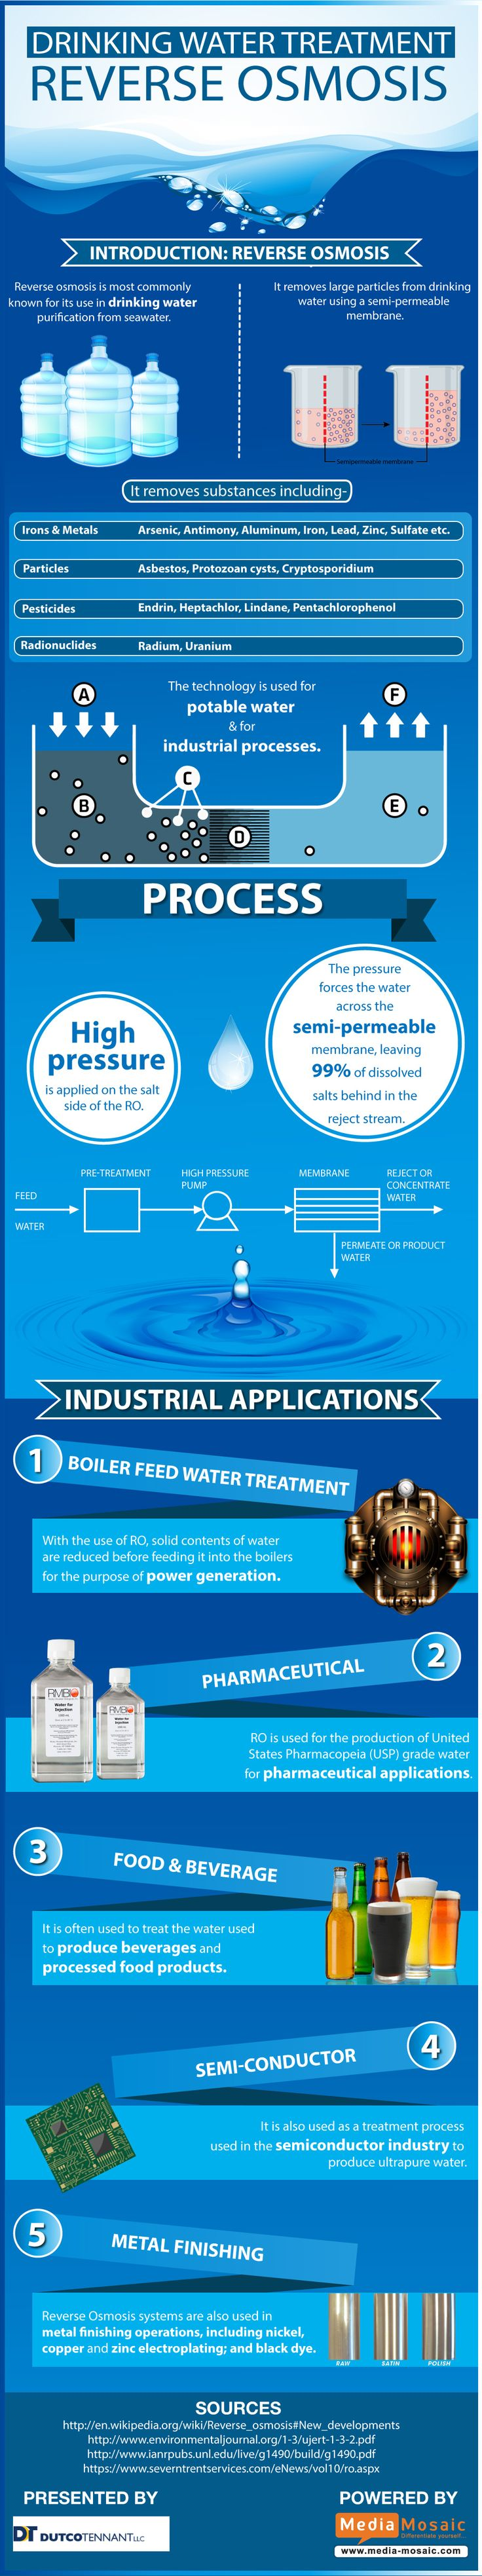 Drinking Water Treatment: Reverse Osmosis